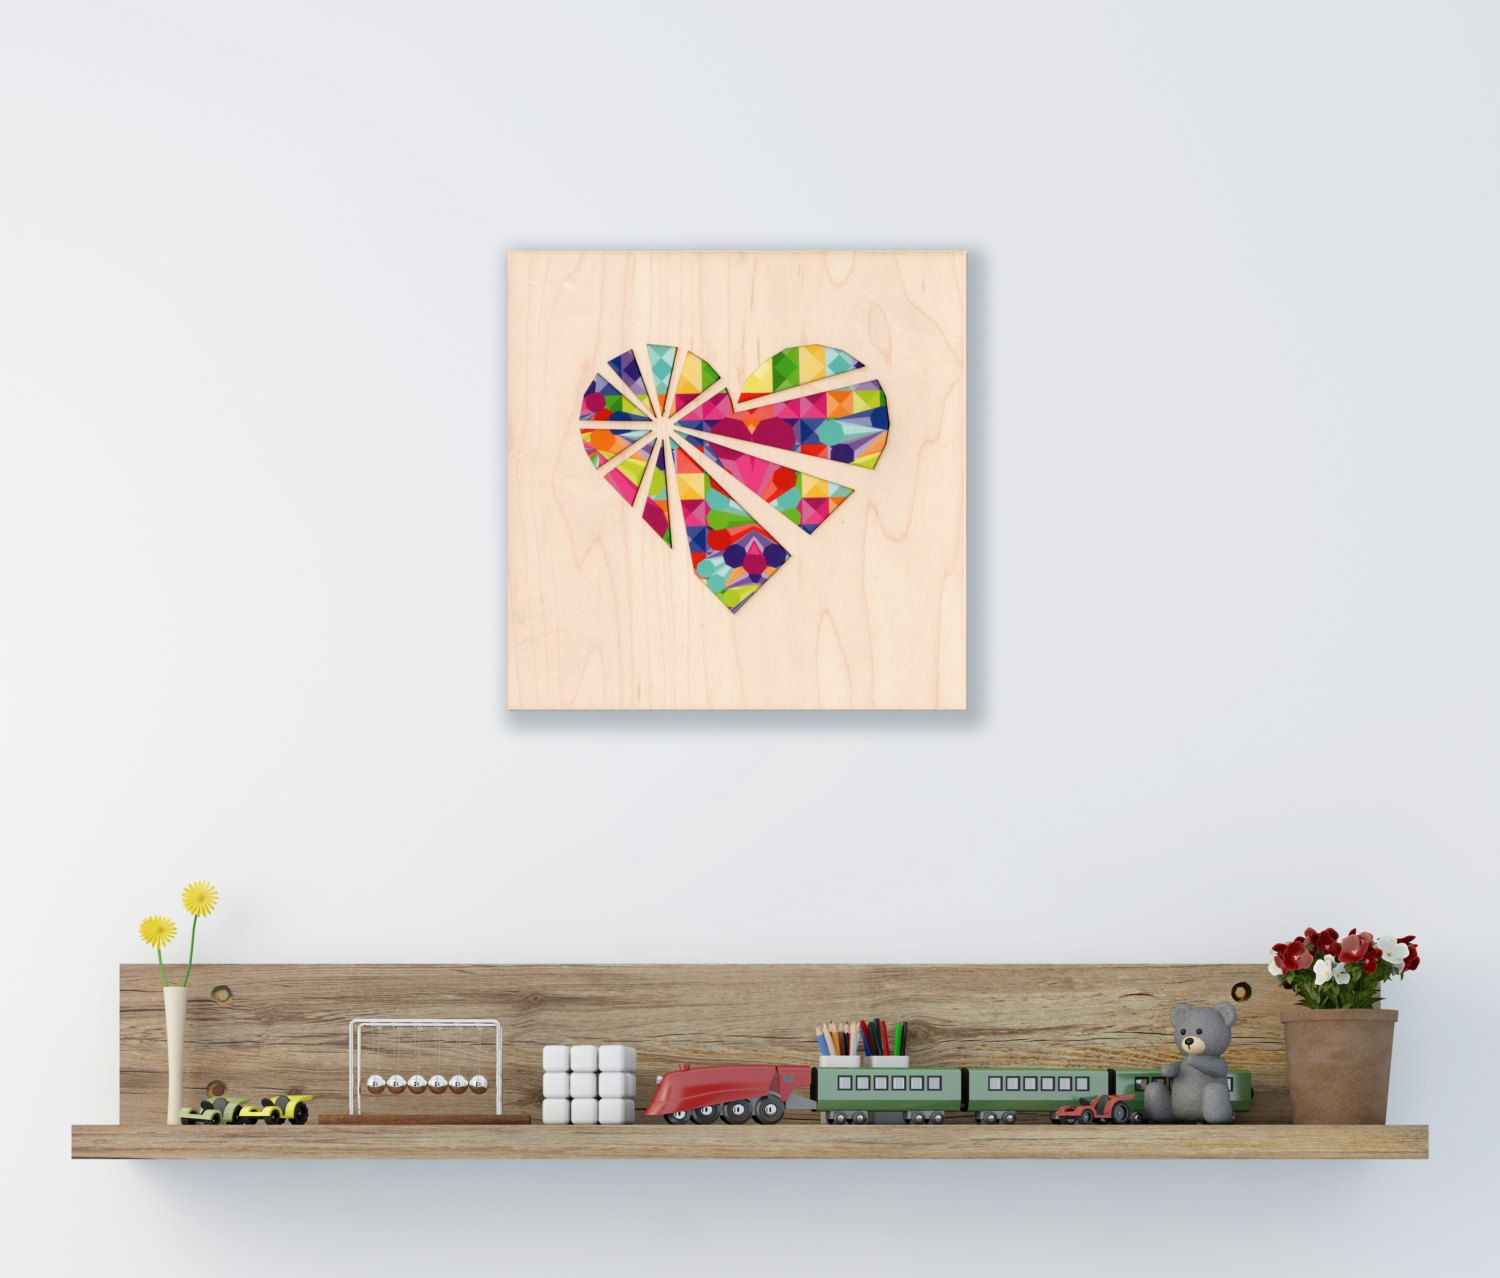 Girls Room Decor, Contemporary Art, Kids Room Wall Art, Heart Wall Décor, New Home Gift, Unique Present, Indoor Décor, Abstract Artwork by MardeFe on Etsy